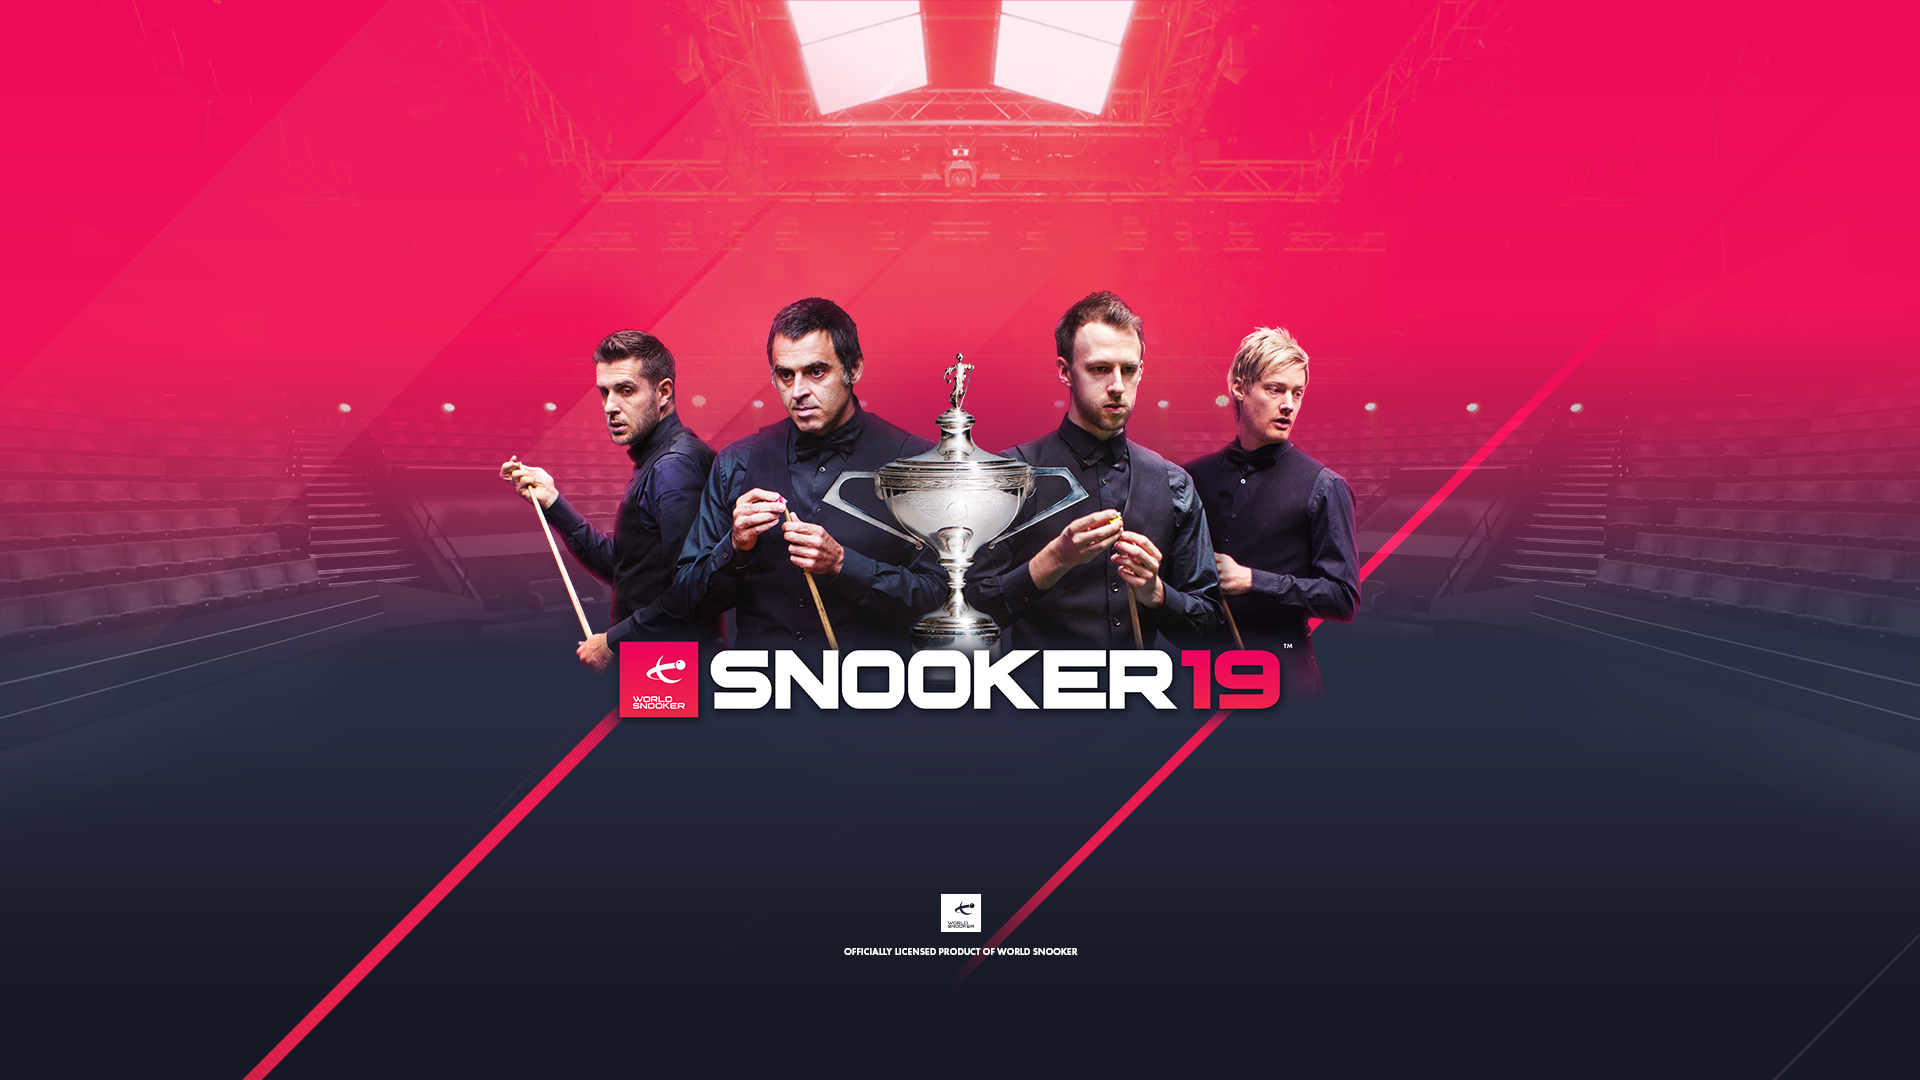 PR - Snooker 19, the first licensed snooker game in a generation, launches Spring 2019 for Nintendo Switch